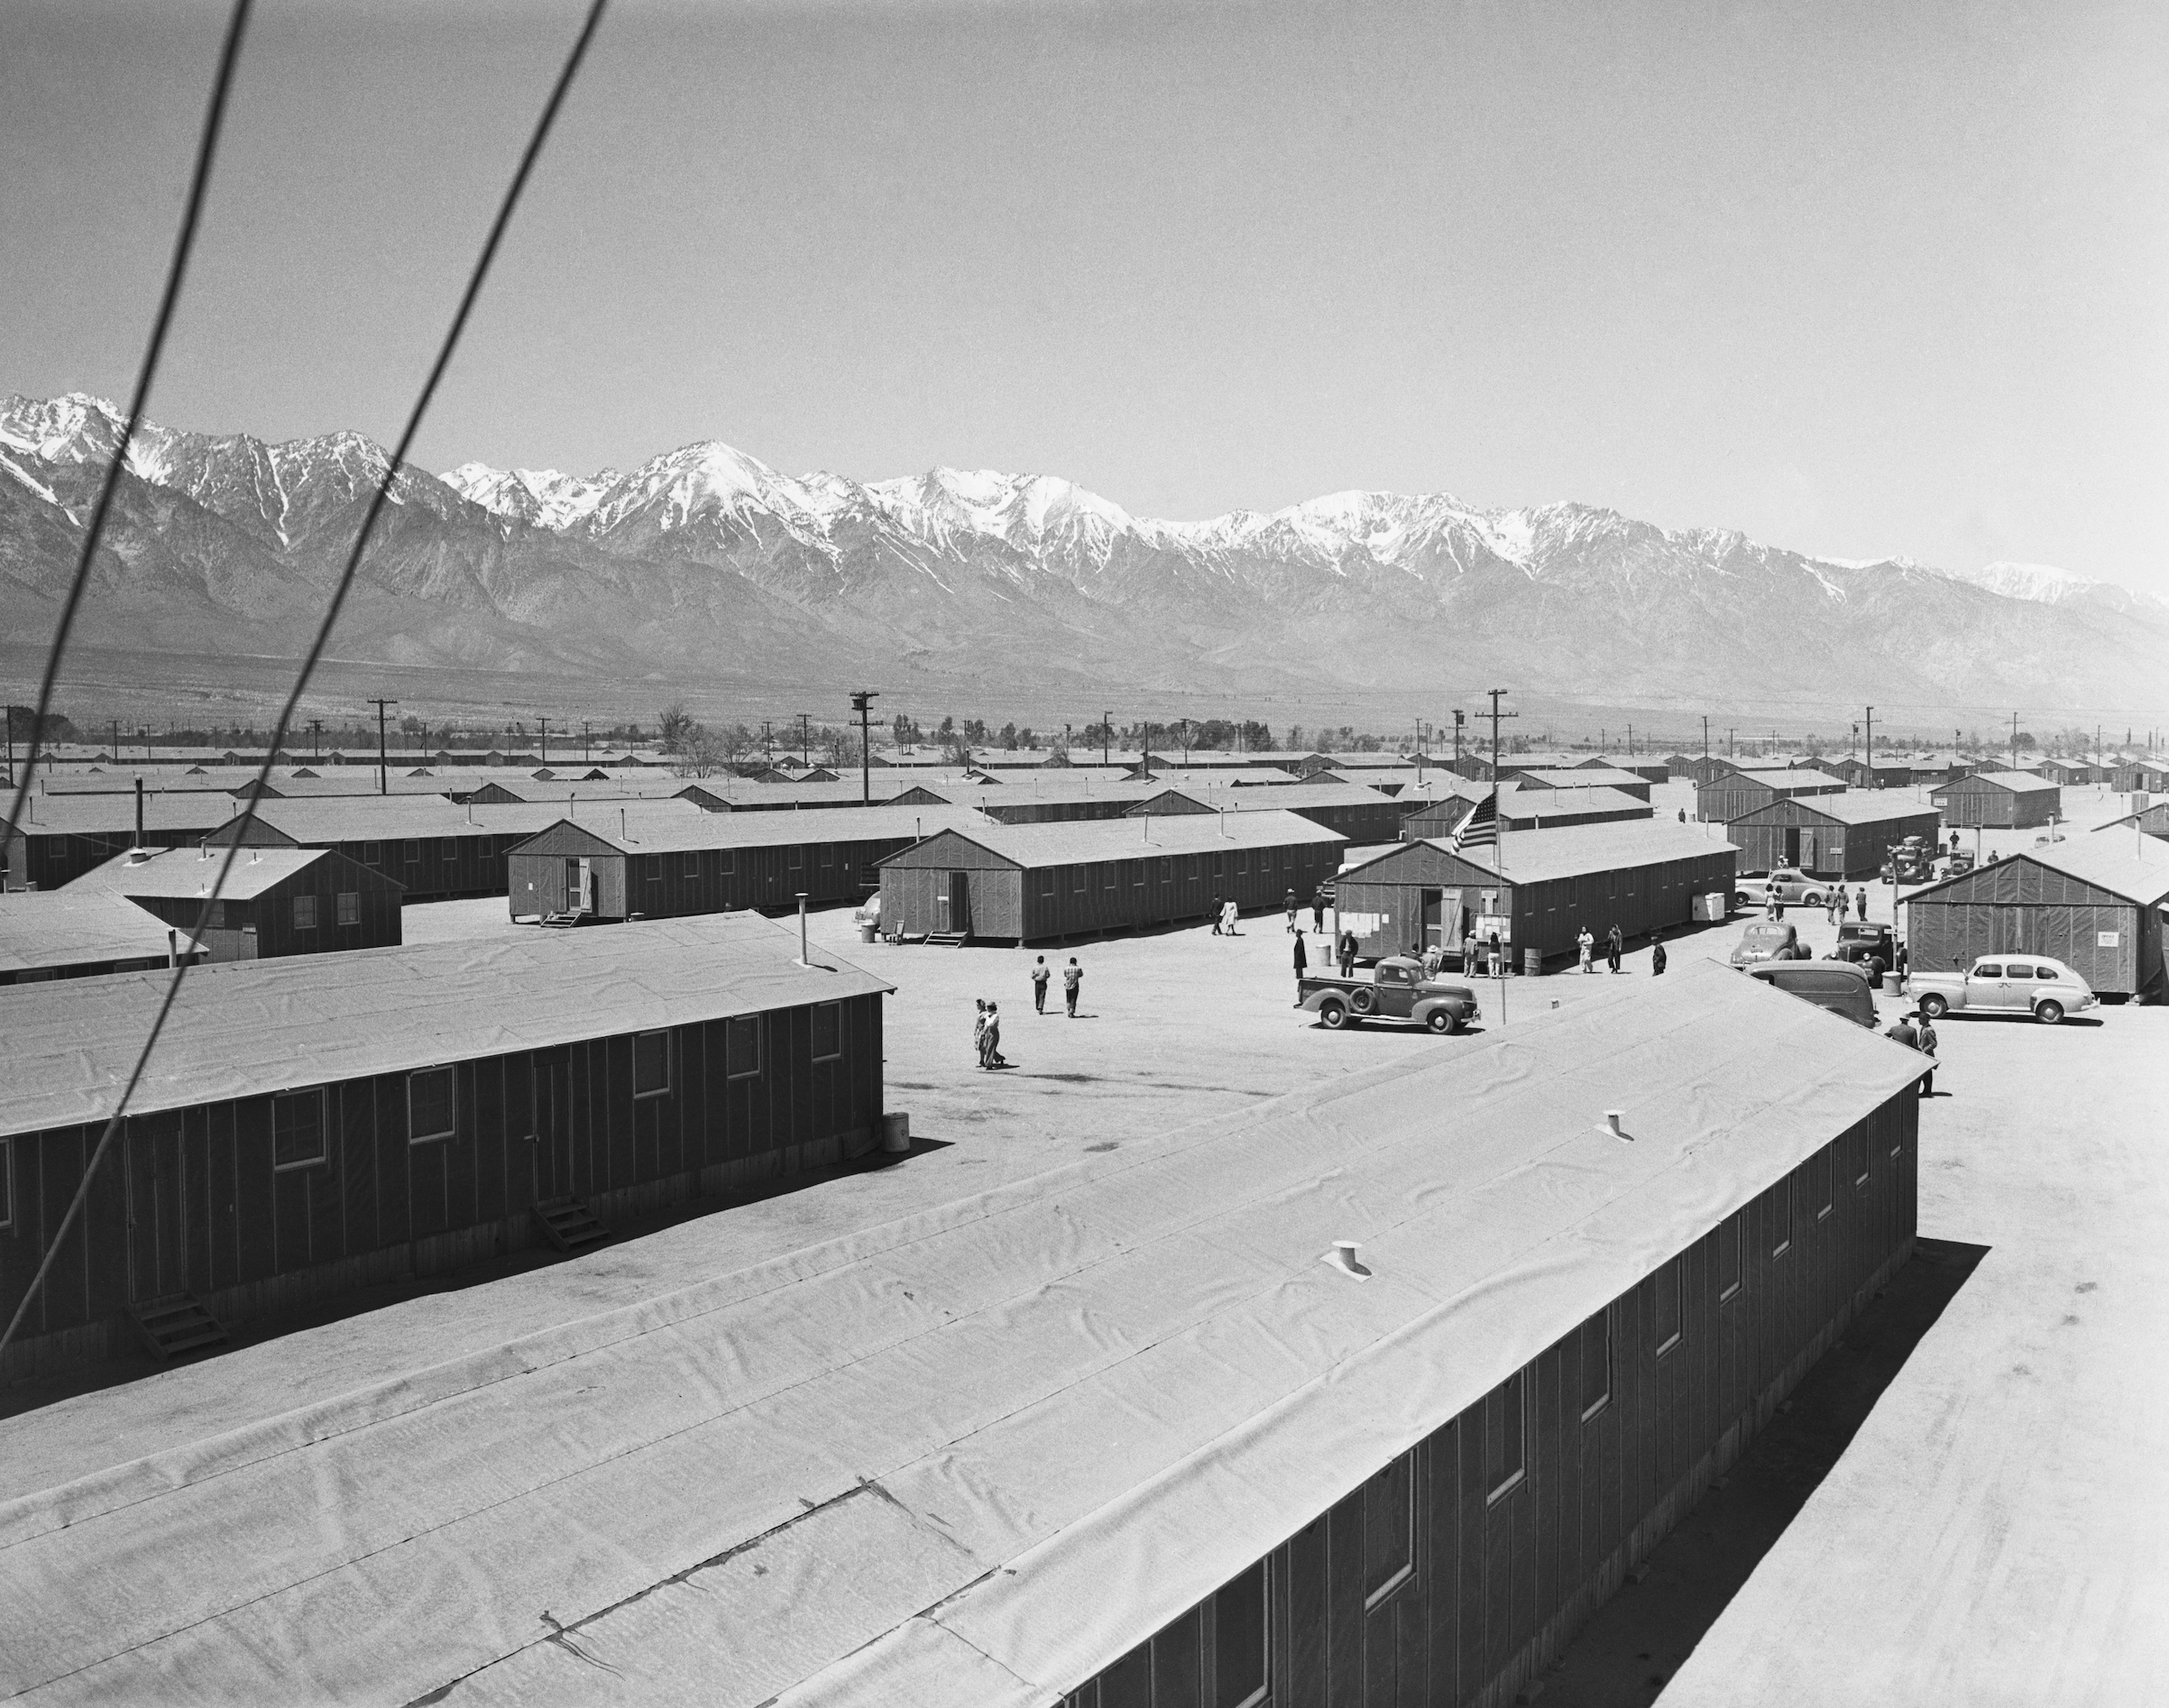 The incarceration camp at Manzanar, Calif., in 1942